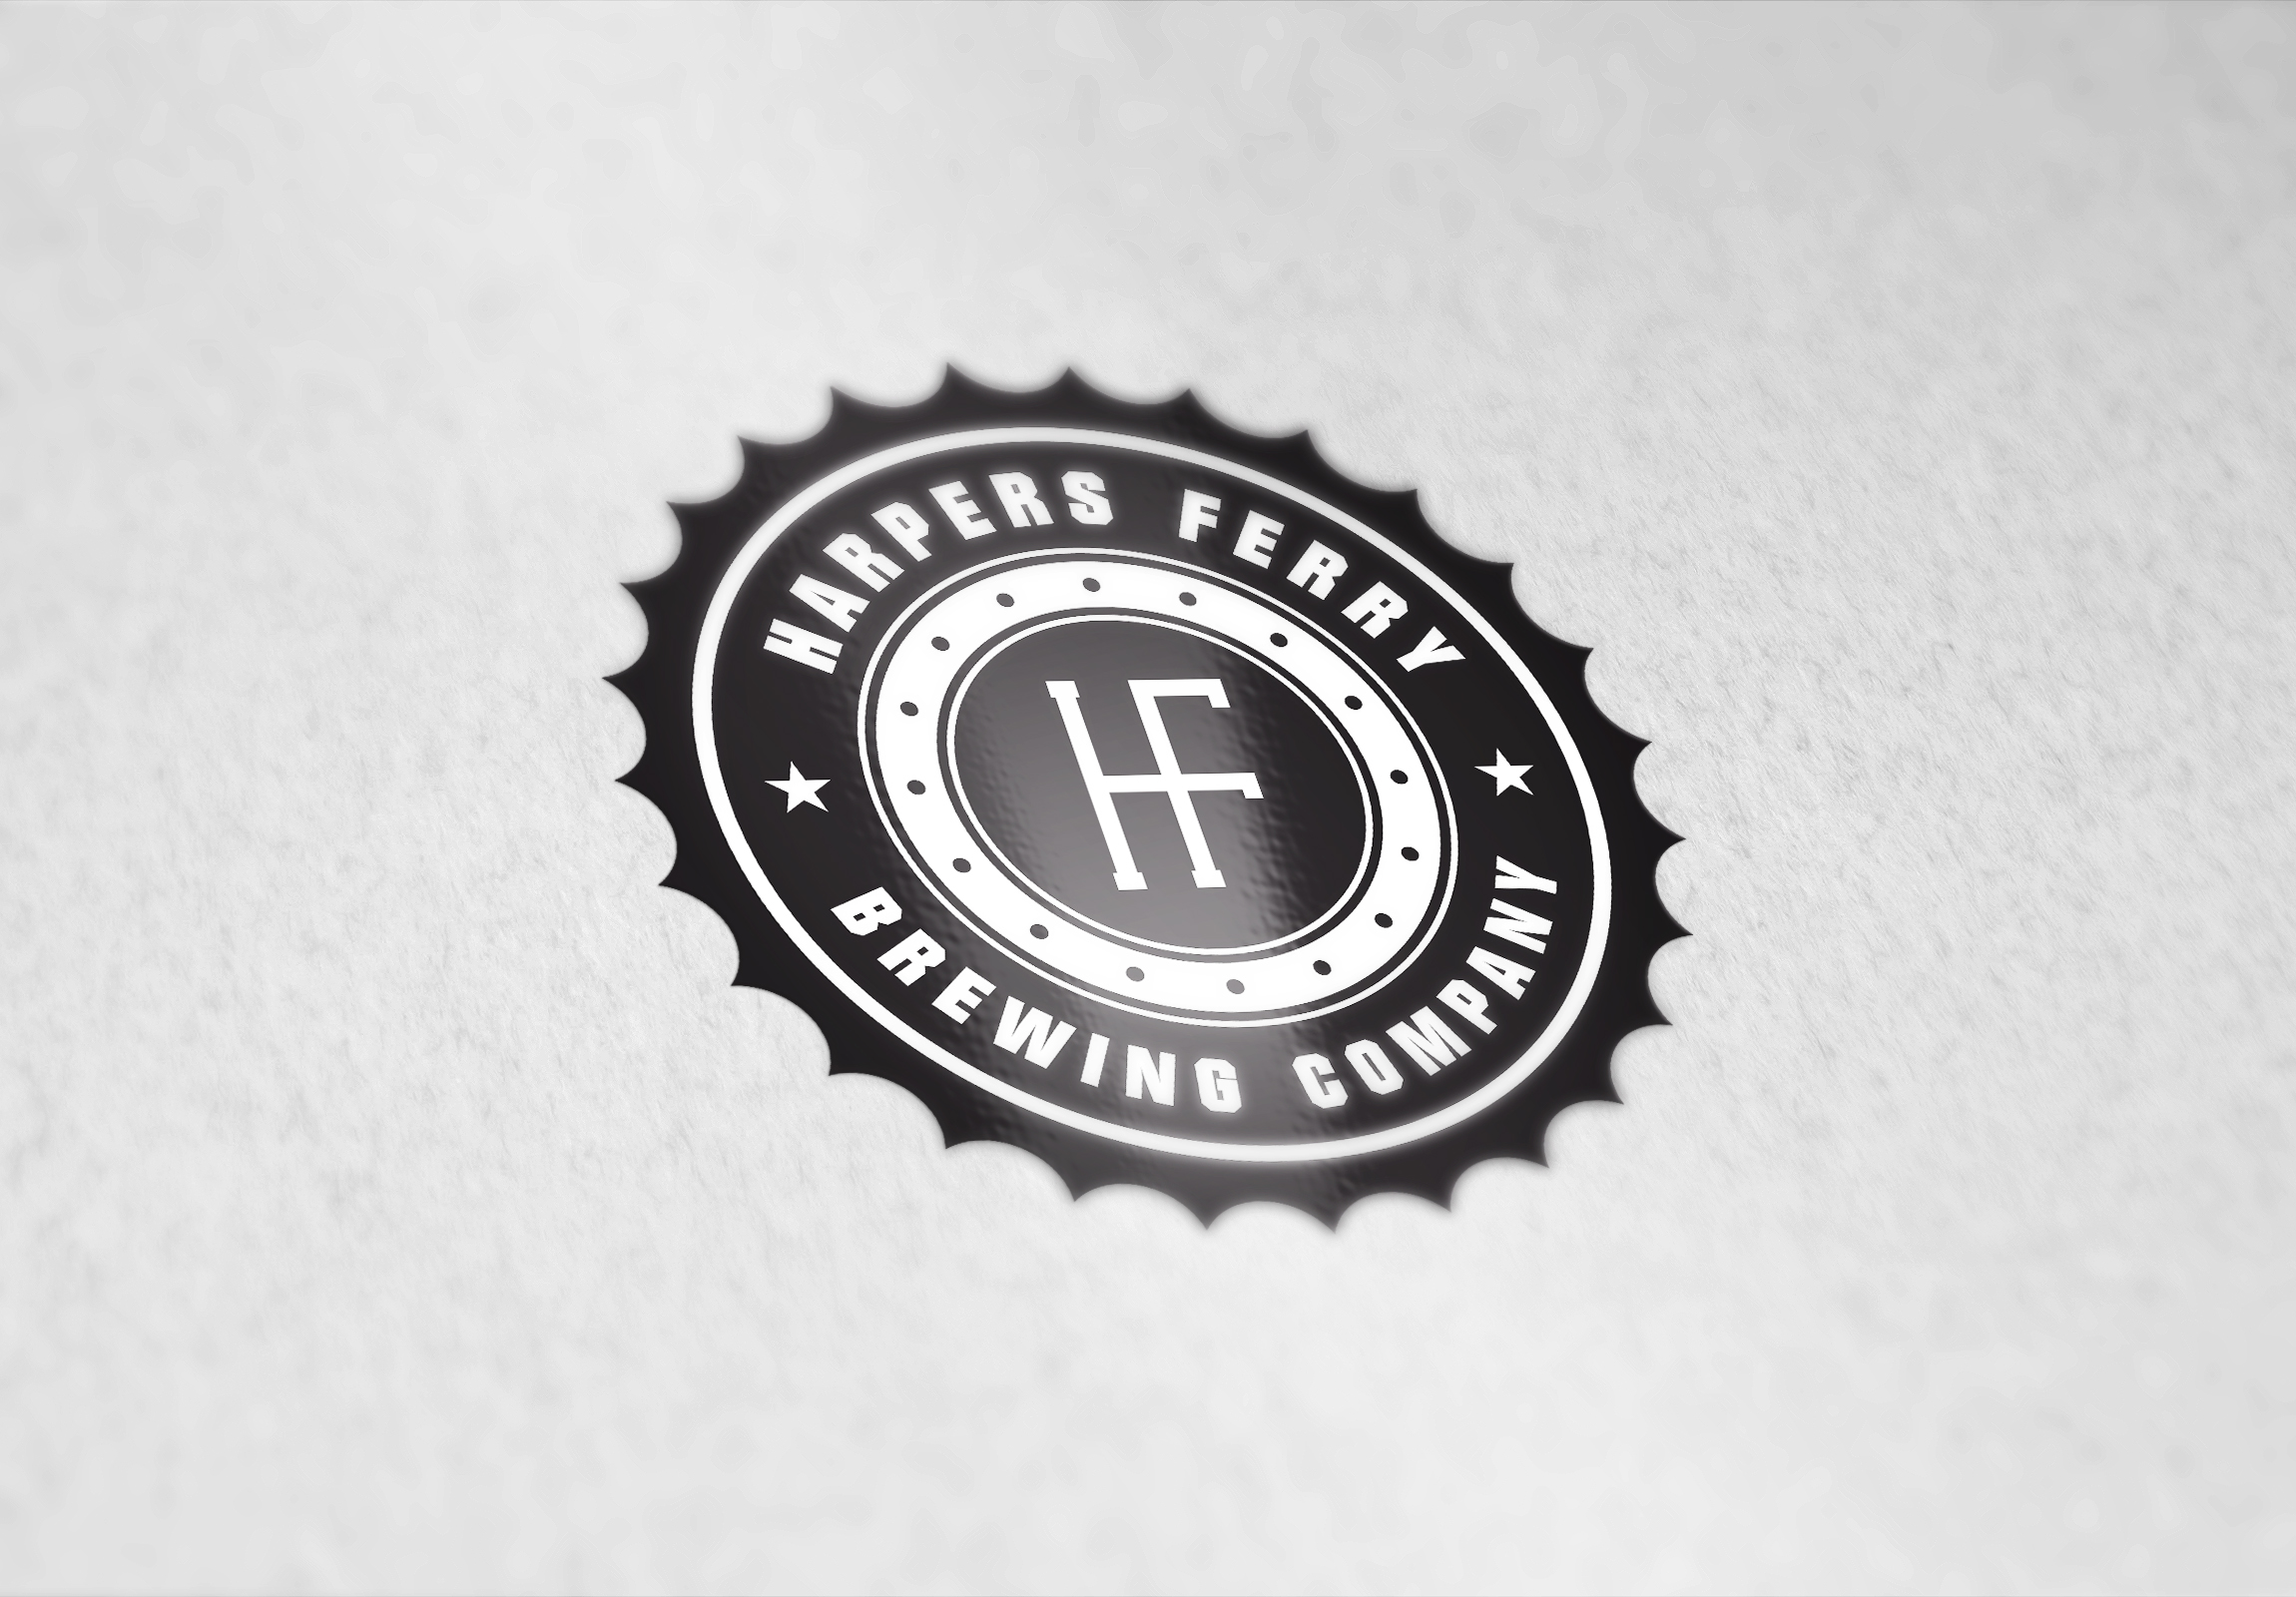 Logo Design by Vivek Das - Entry No. 117 in the Logo Design Contest Unique Logo Design Wanted for Harpers ferry brewing company.